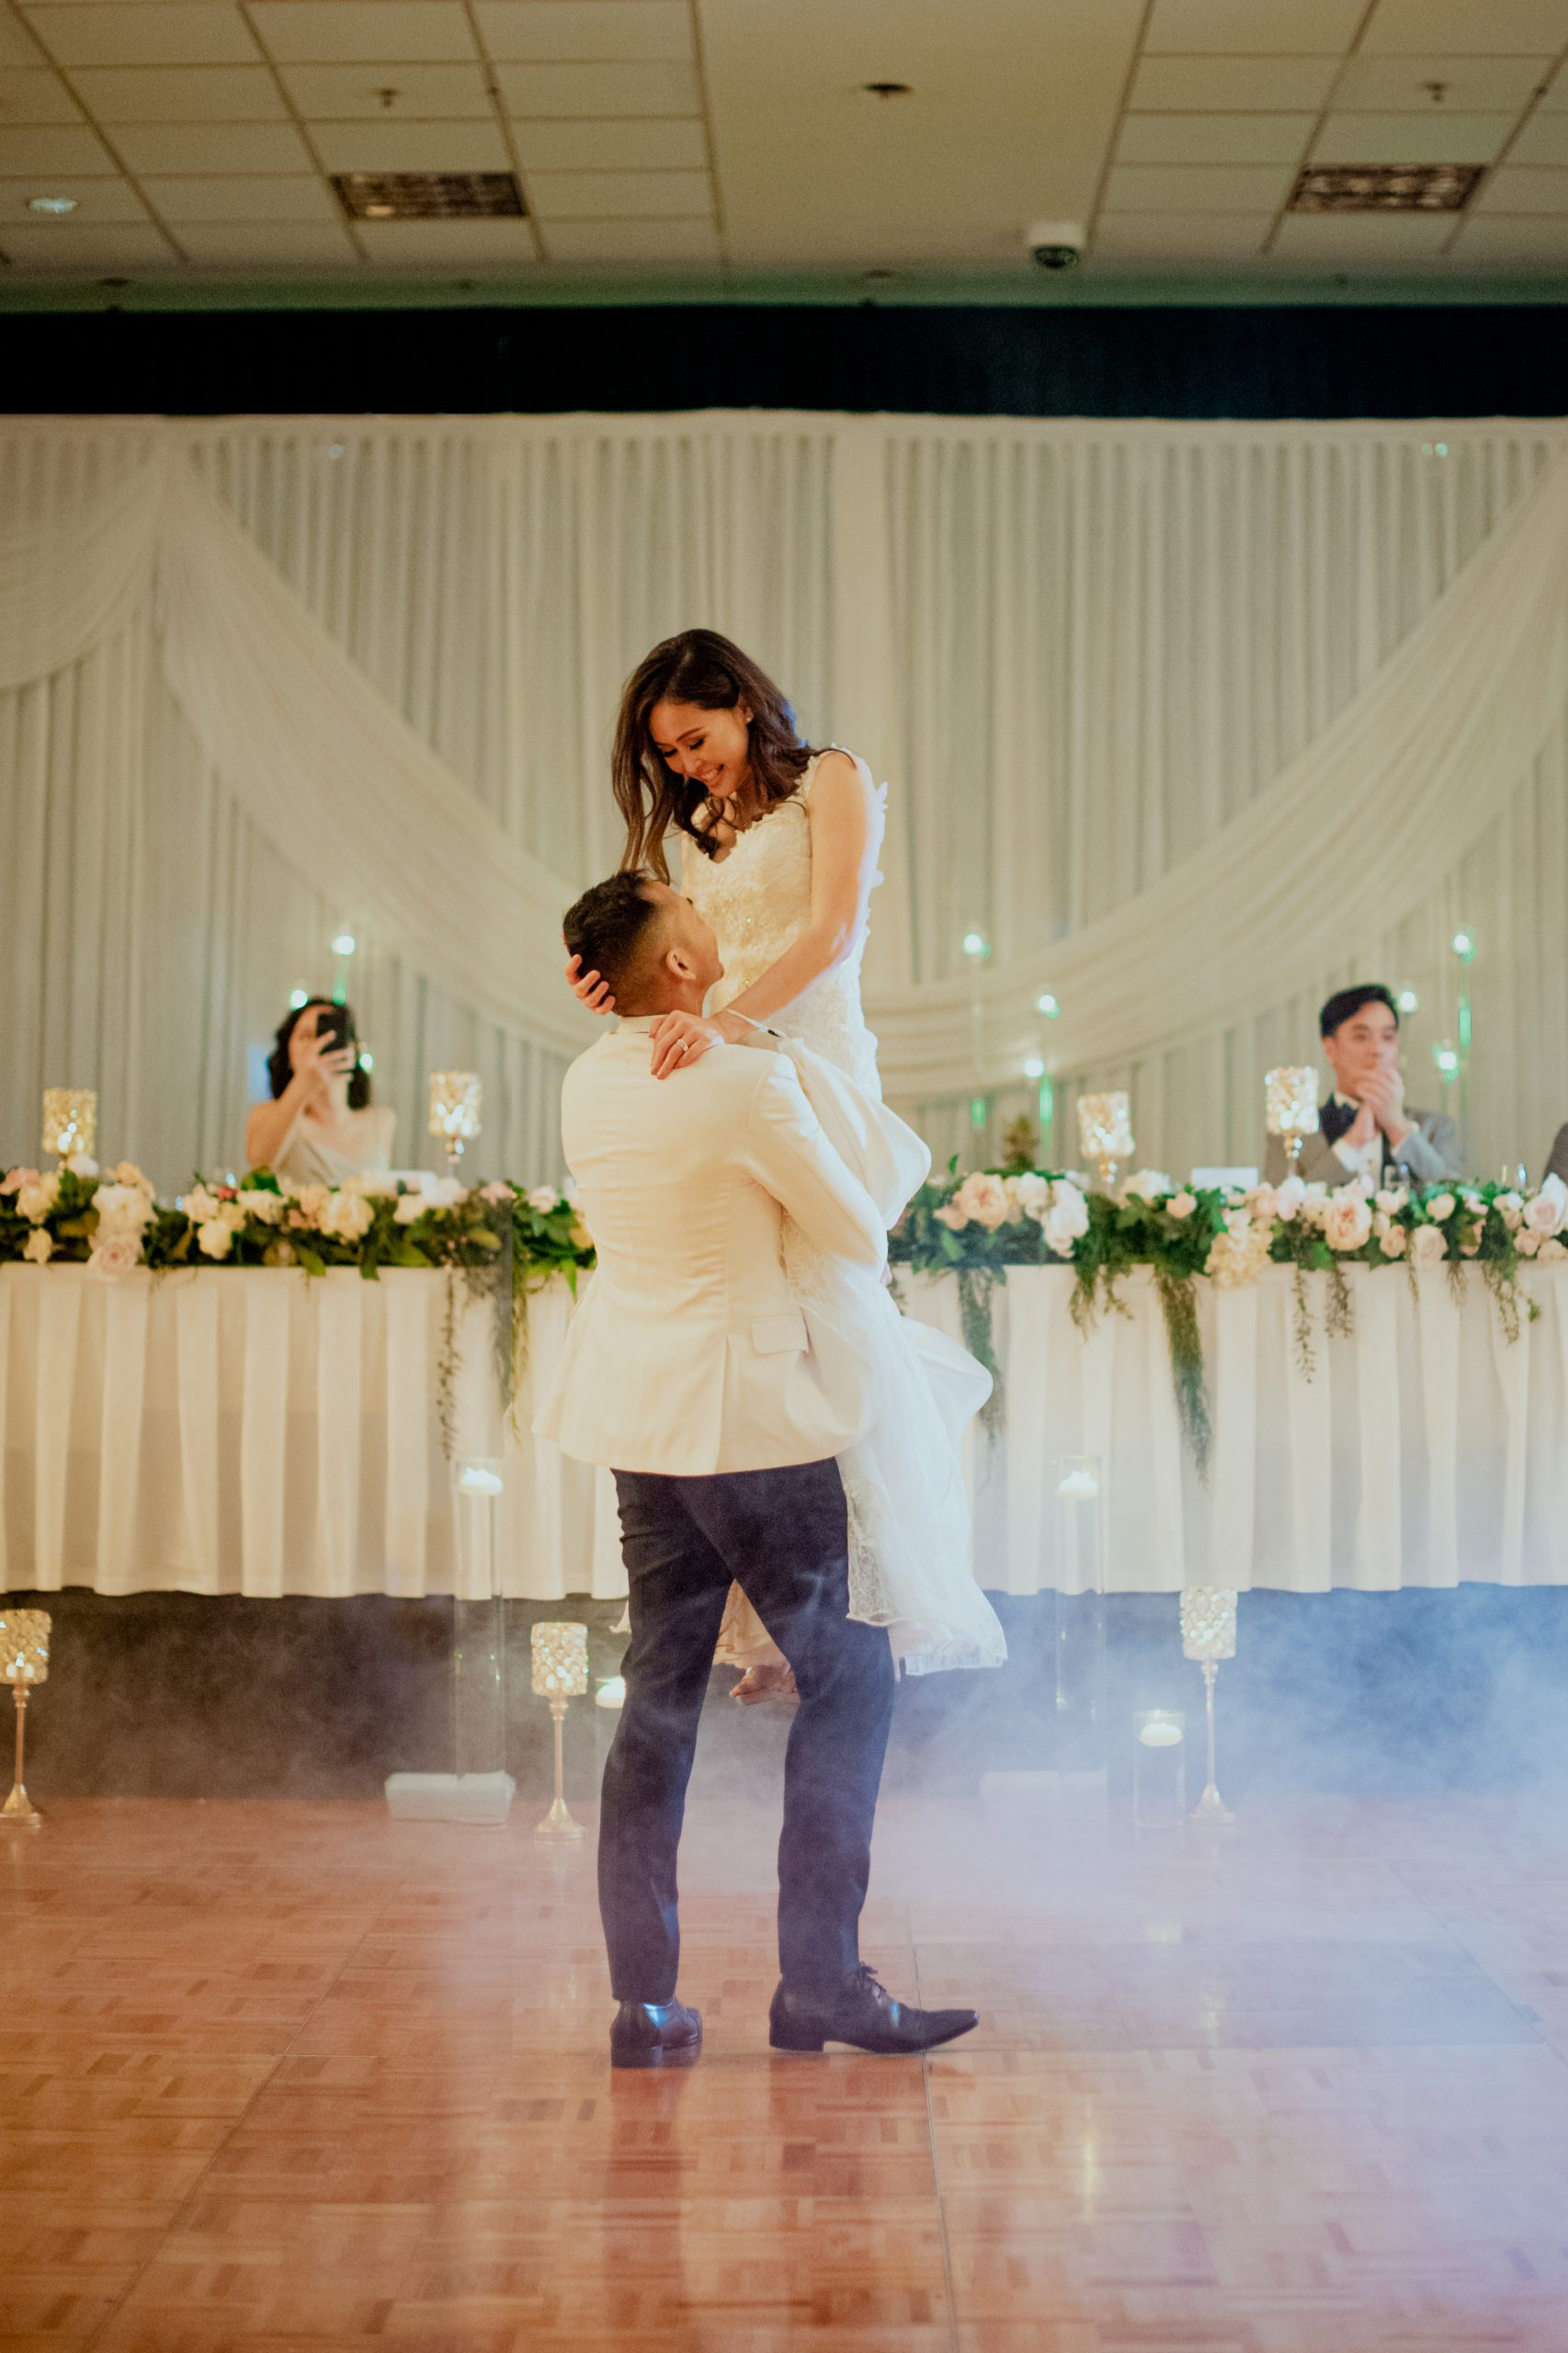 A bride being lifted in the air while smoke covers the dance floor